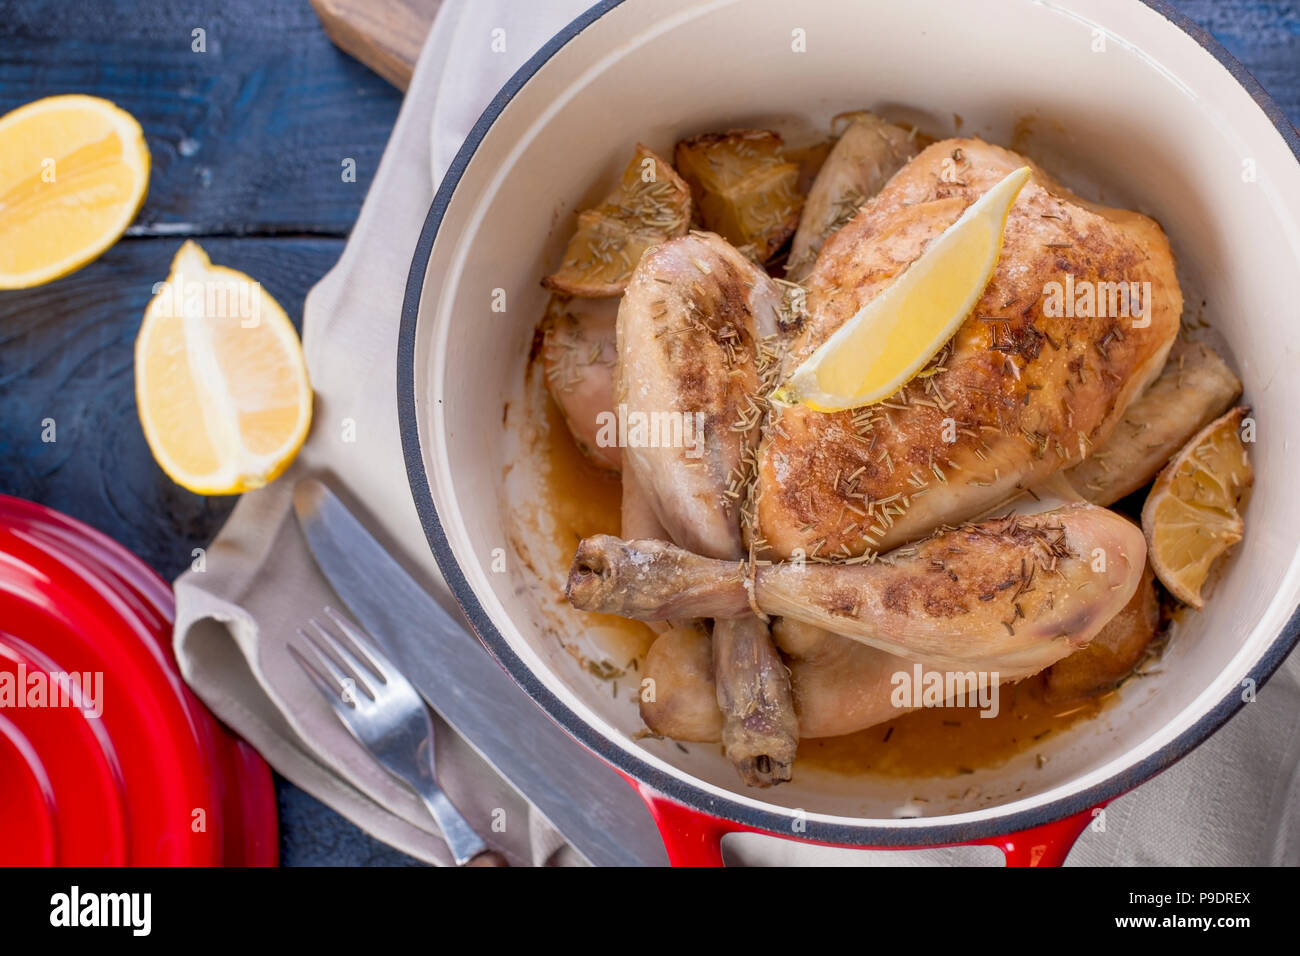 The whole chicken baked with lemon and rosemary in a red cast iron. Blue wooden background and gray towel. Knife and fork. Free space for text. - Stock Image